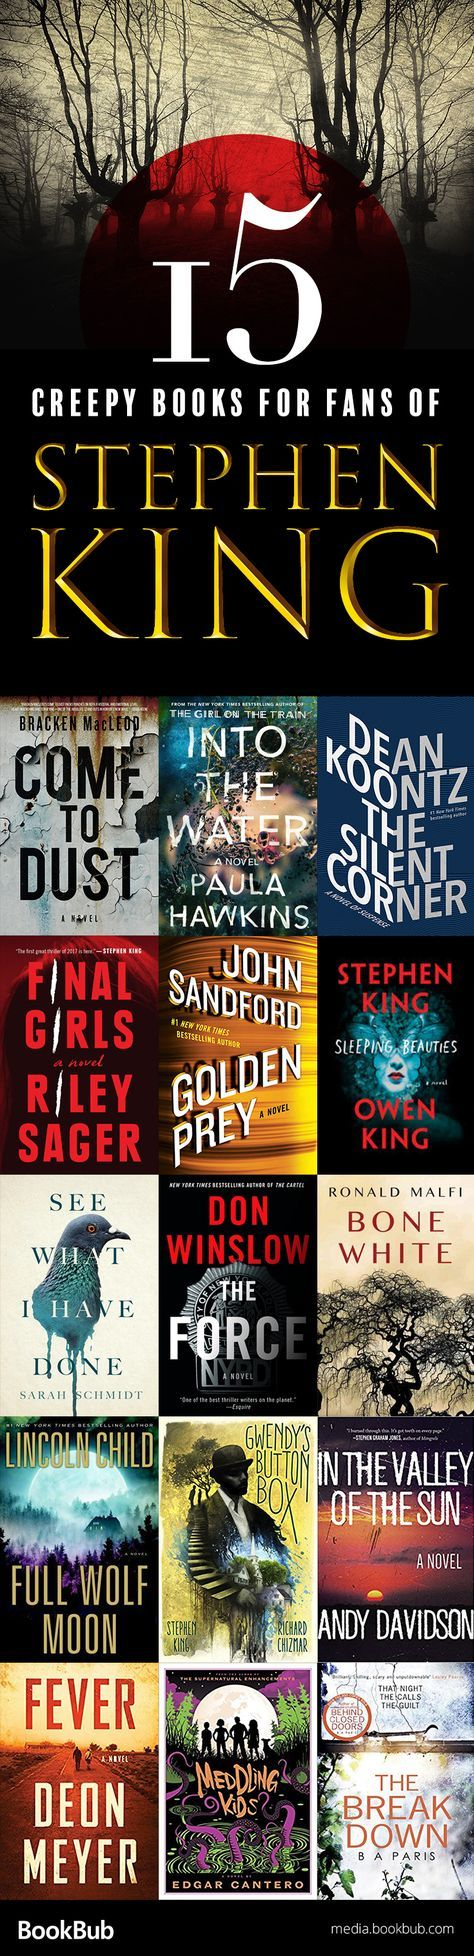 15 Creepy Books for Stephen King Fans Coming This Summer